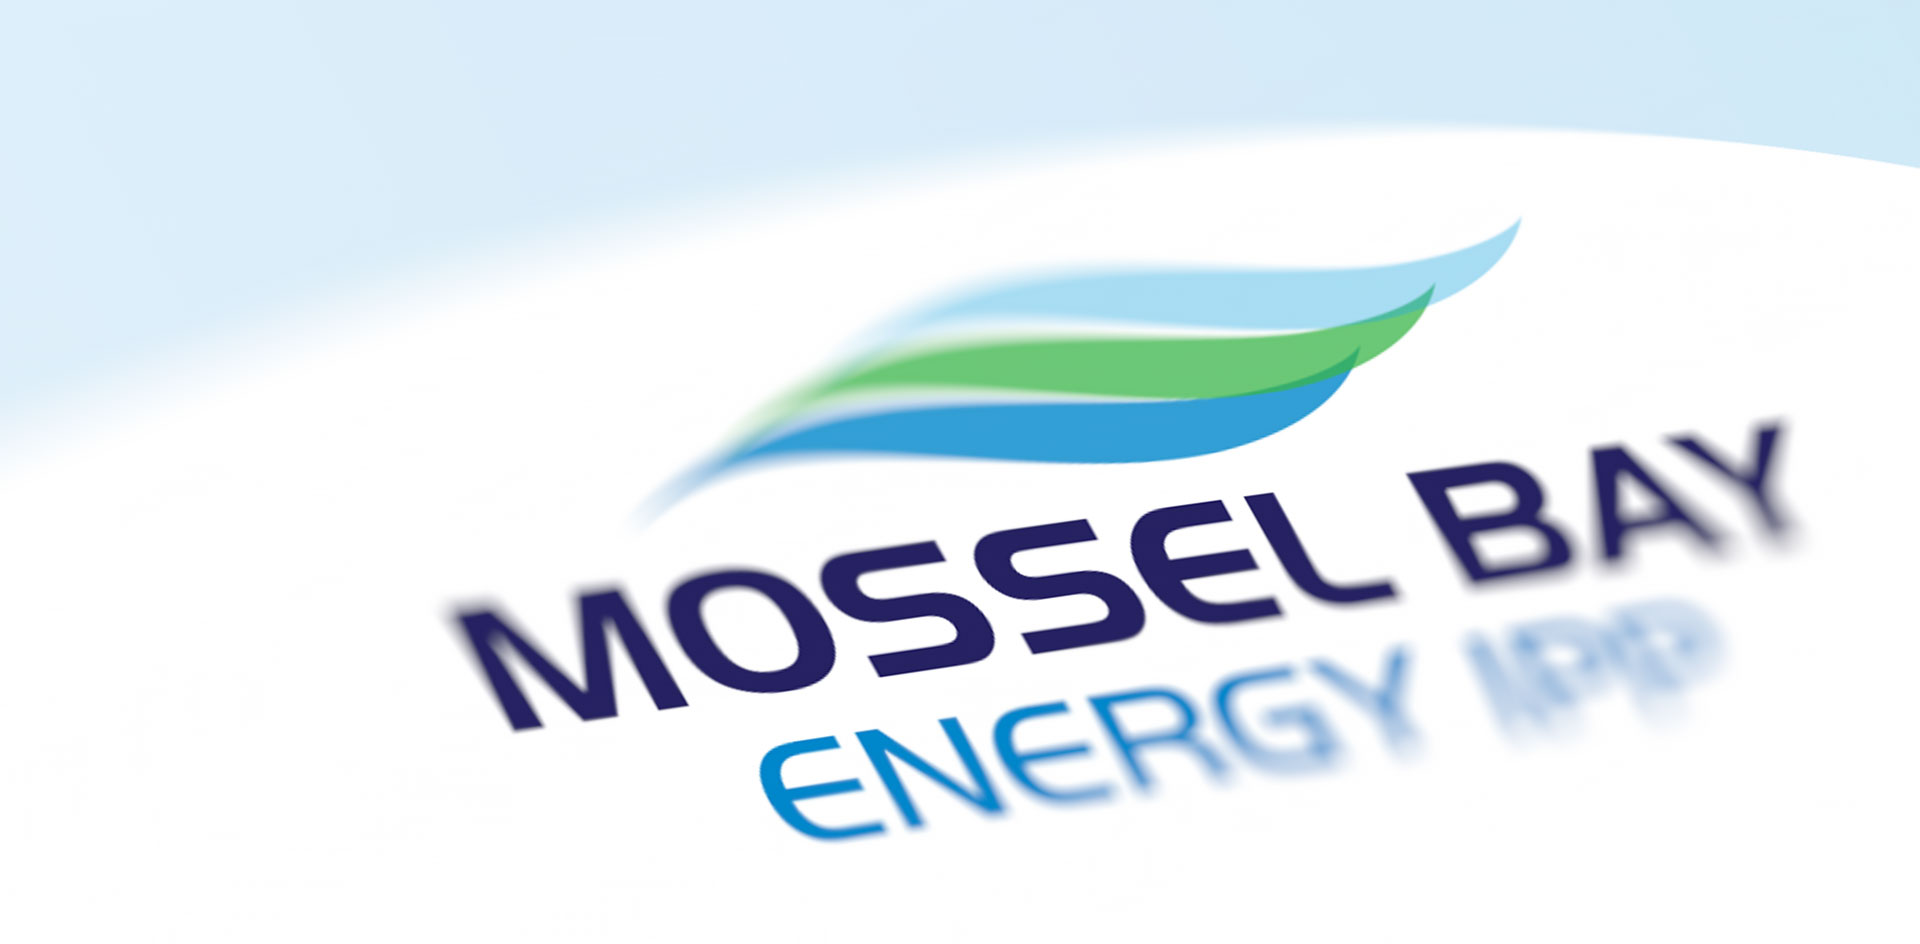 Mossel Bay Energy by Black Rooster Studios.